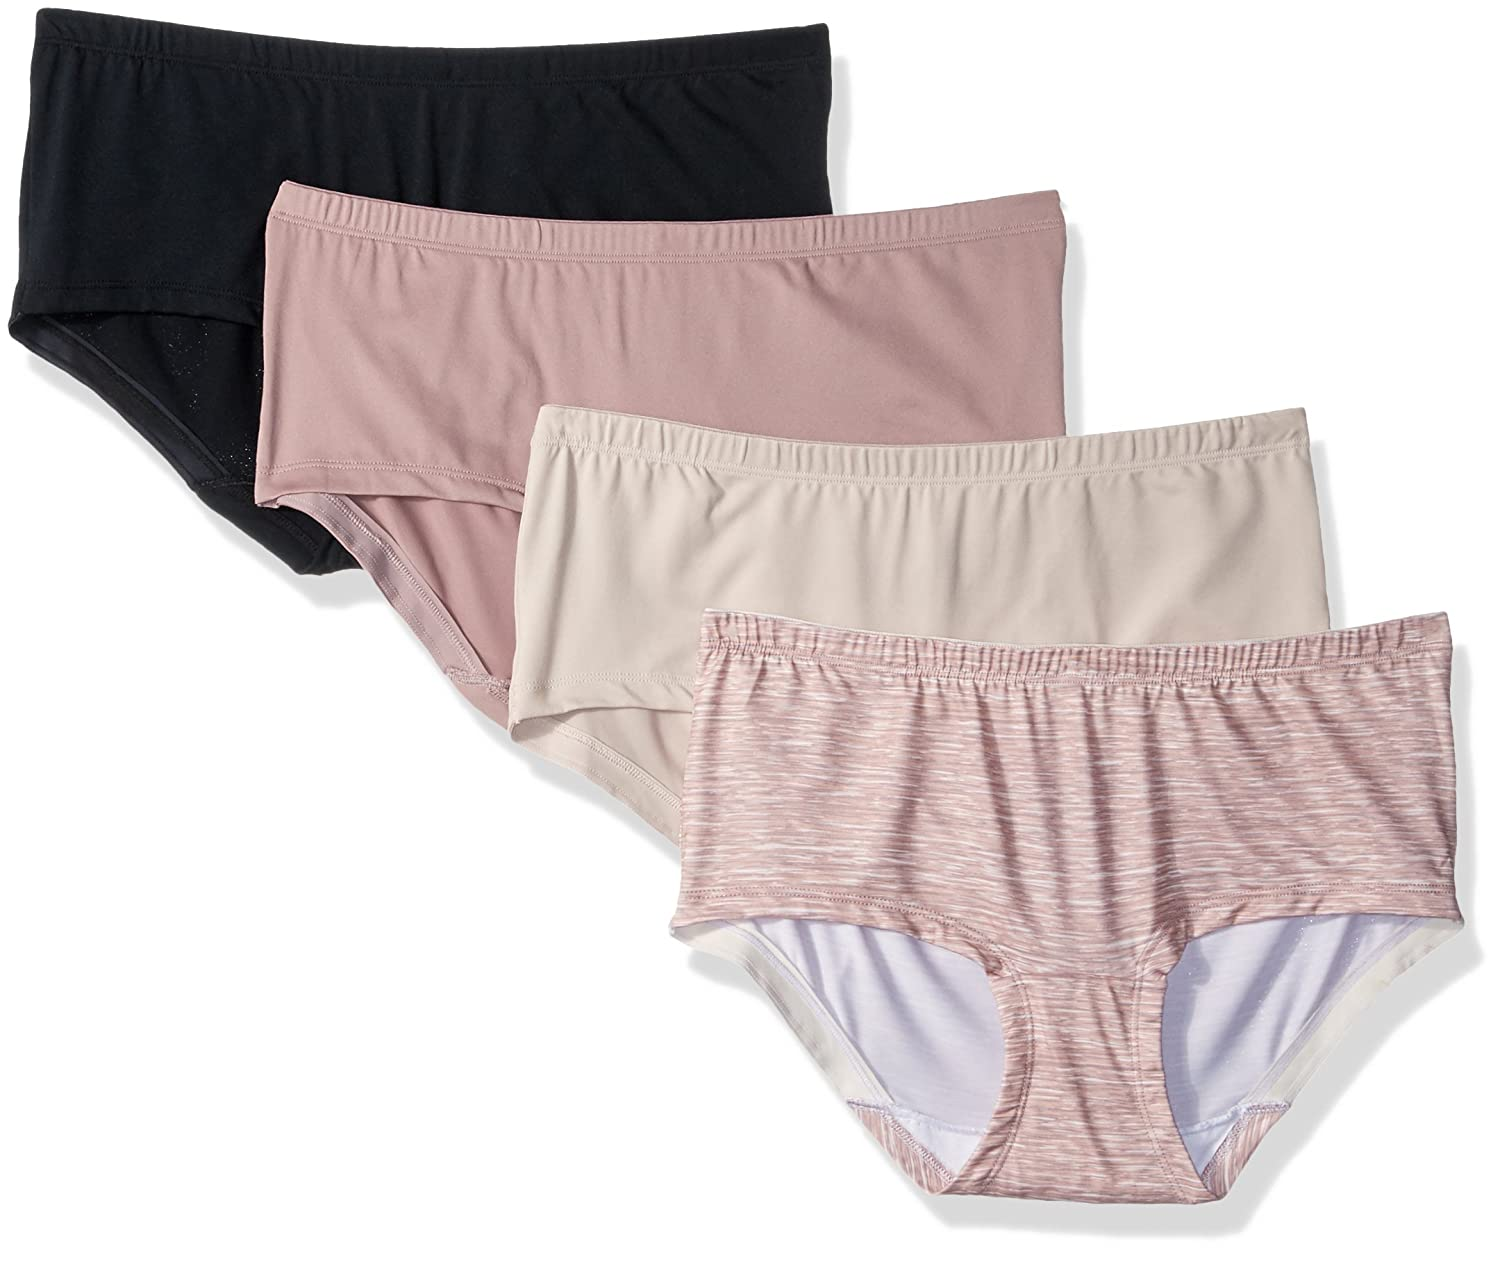 Fruit of the Loom Women's 4 Pack No Ride up Boyshort Panties 4DMNRBS